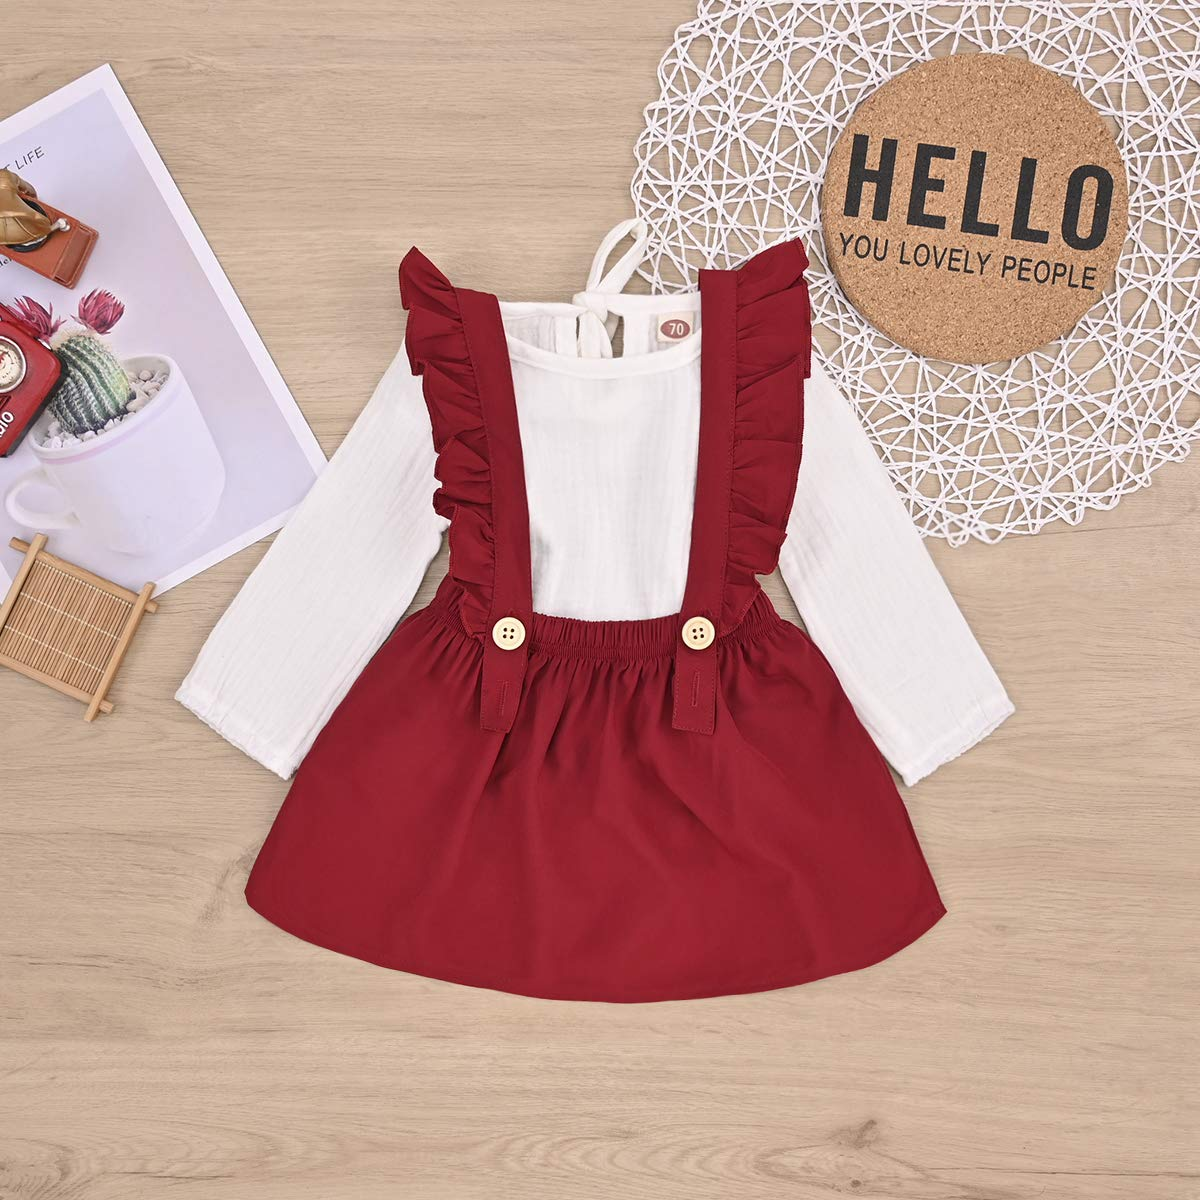 Baby Girl Skirts Sets Cotton Linen Long Sleeve Top+Ruffle Strap Suspender Dress Fall//Winter Outfits Set Clothes